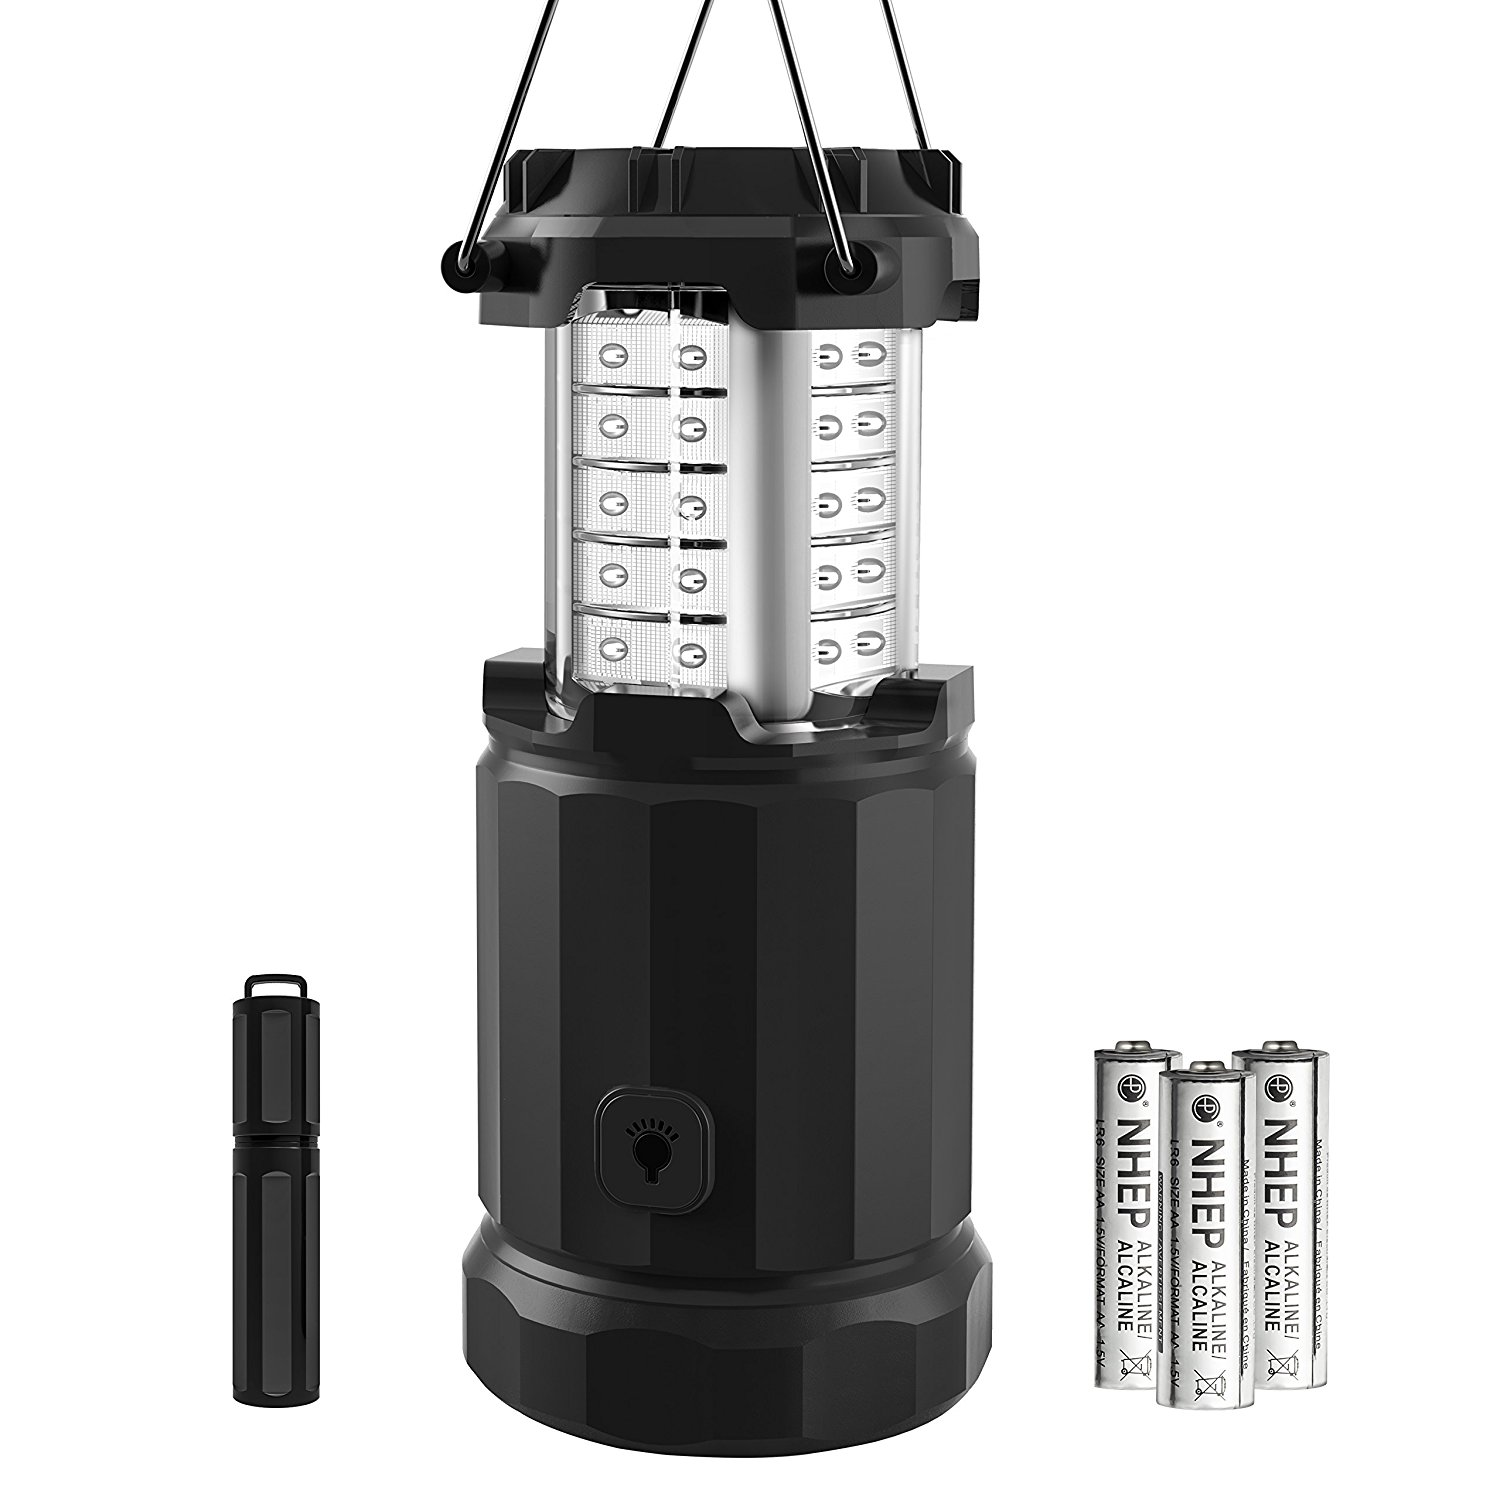 Etekcity LED Lantern Camping Magnetic Lights Dimmer Button Brightness Control with Batteries, Camping Gear for Hiking, Power Outage, Fishing, Storm (Collapsible, Upgraded CL30)